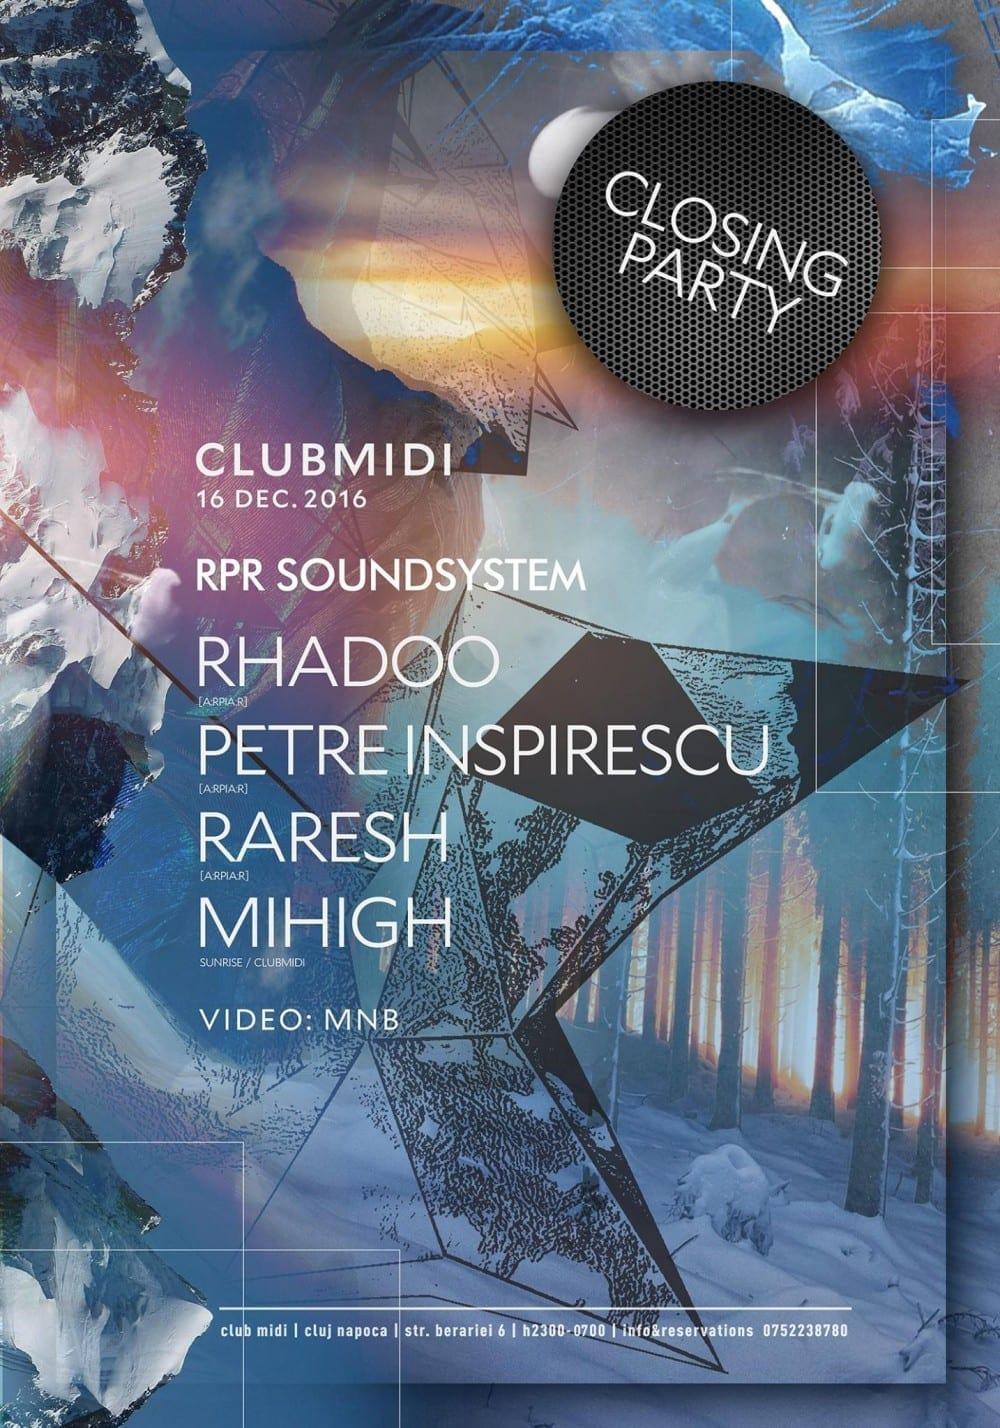 Closing Party: Rhadoo, Petre Inspirescu, Raresh, Mihigh @ Club Midi